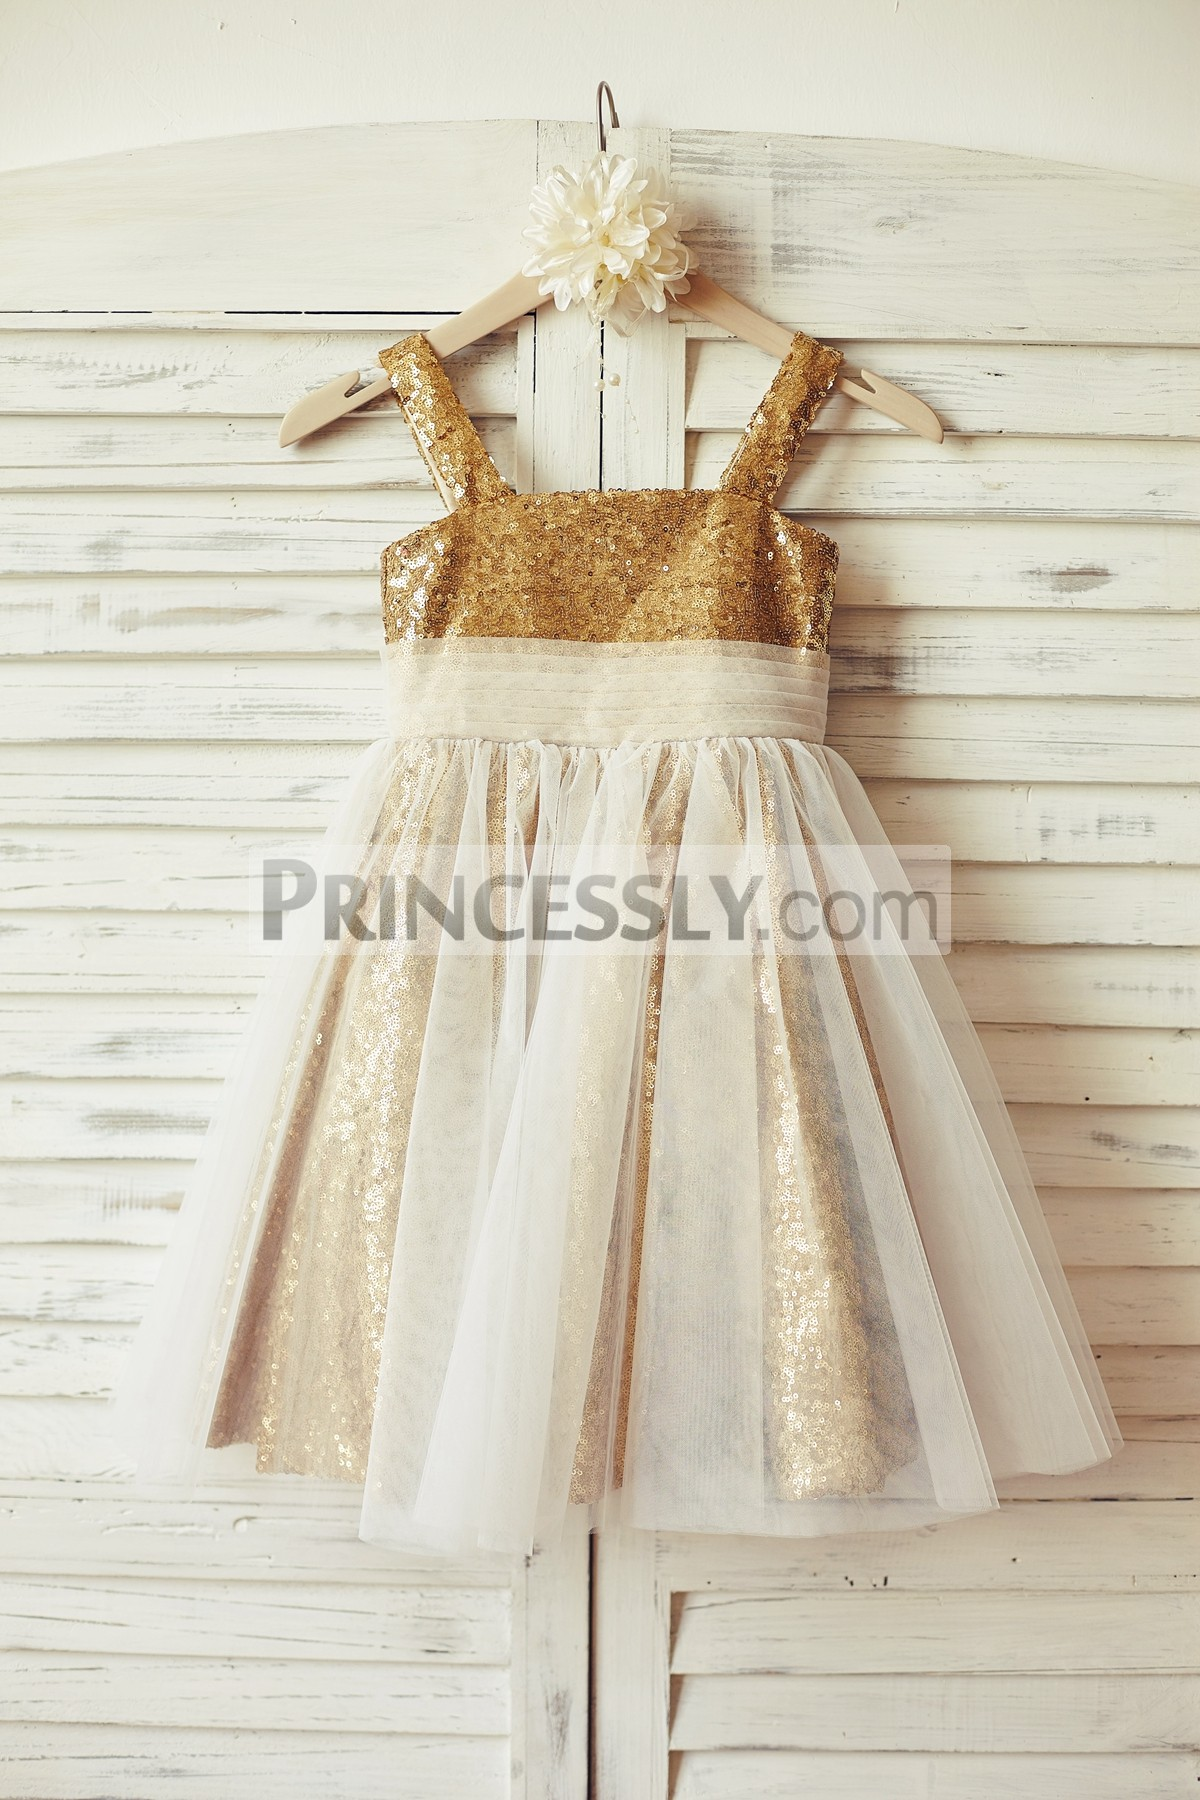 c522749494f Thin Straps Gold Sequin Flower Girl Dress with Ivory Tulle Overlay ...